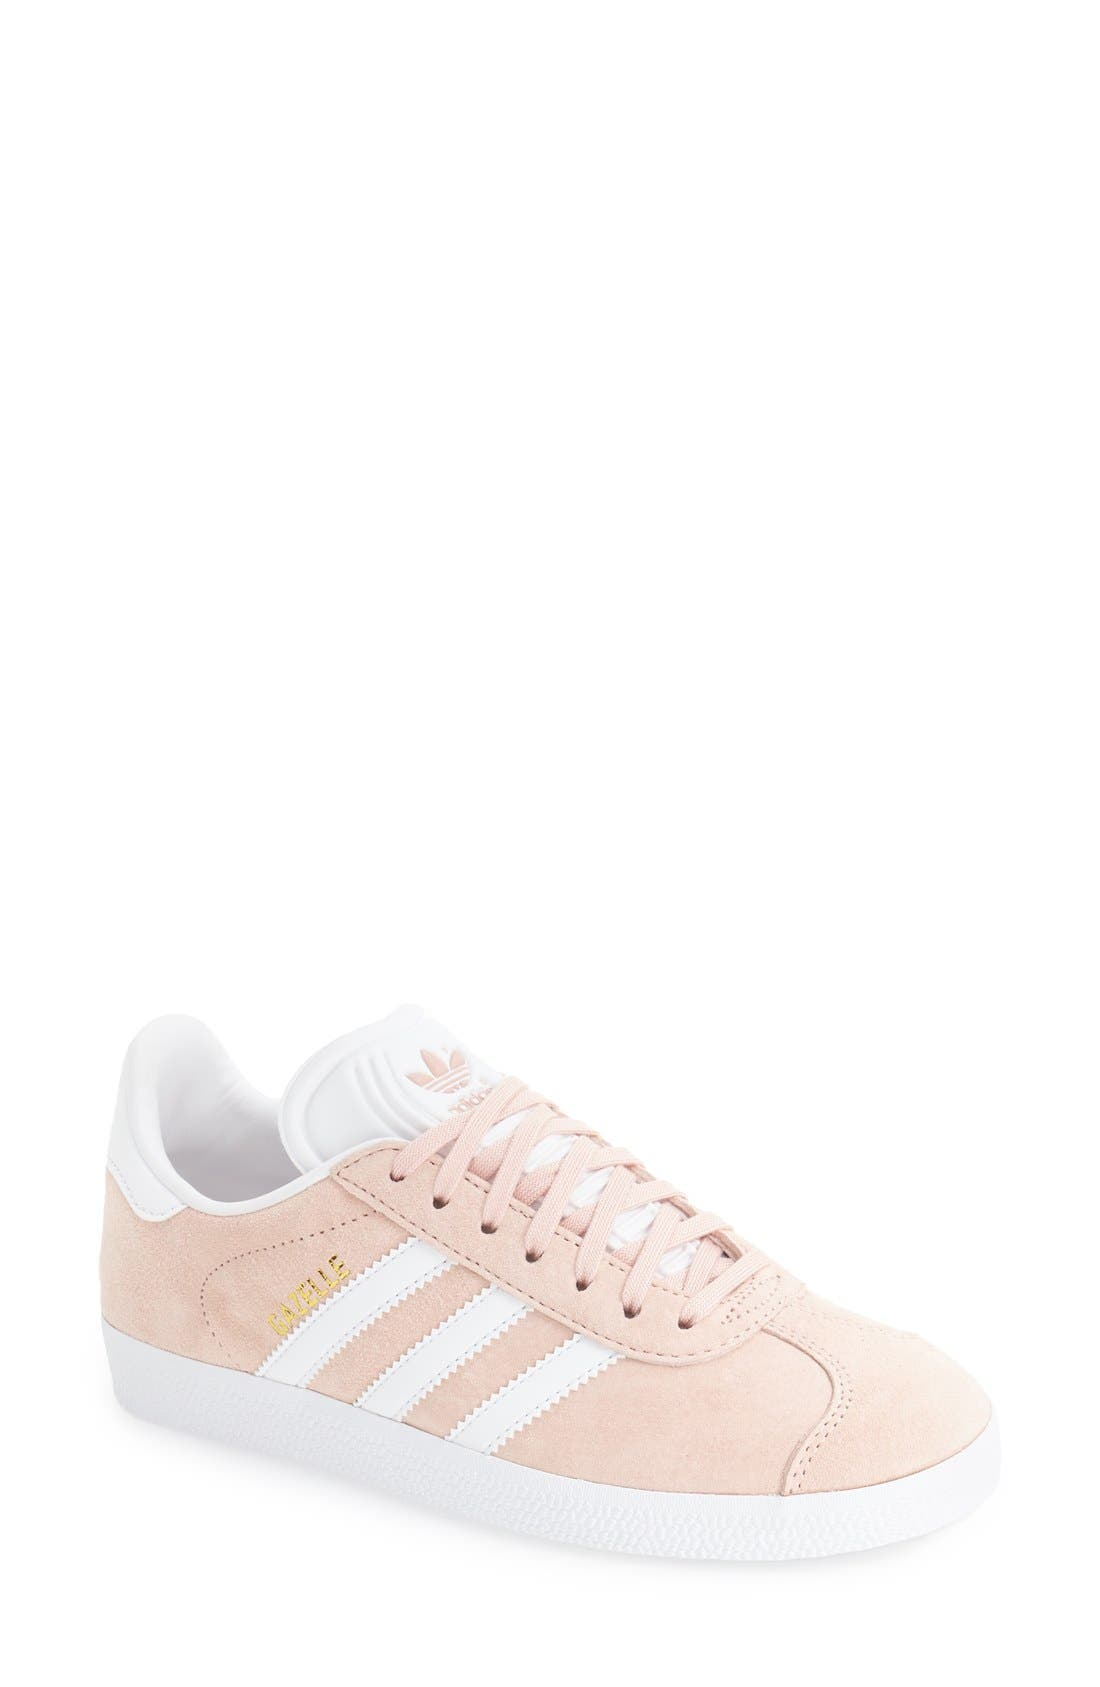 Alternate Image 1 Selected - adidas Gazelle Sneaker